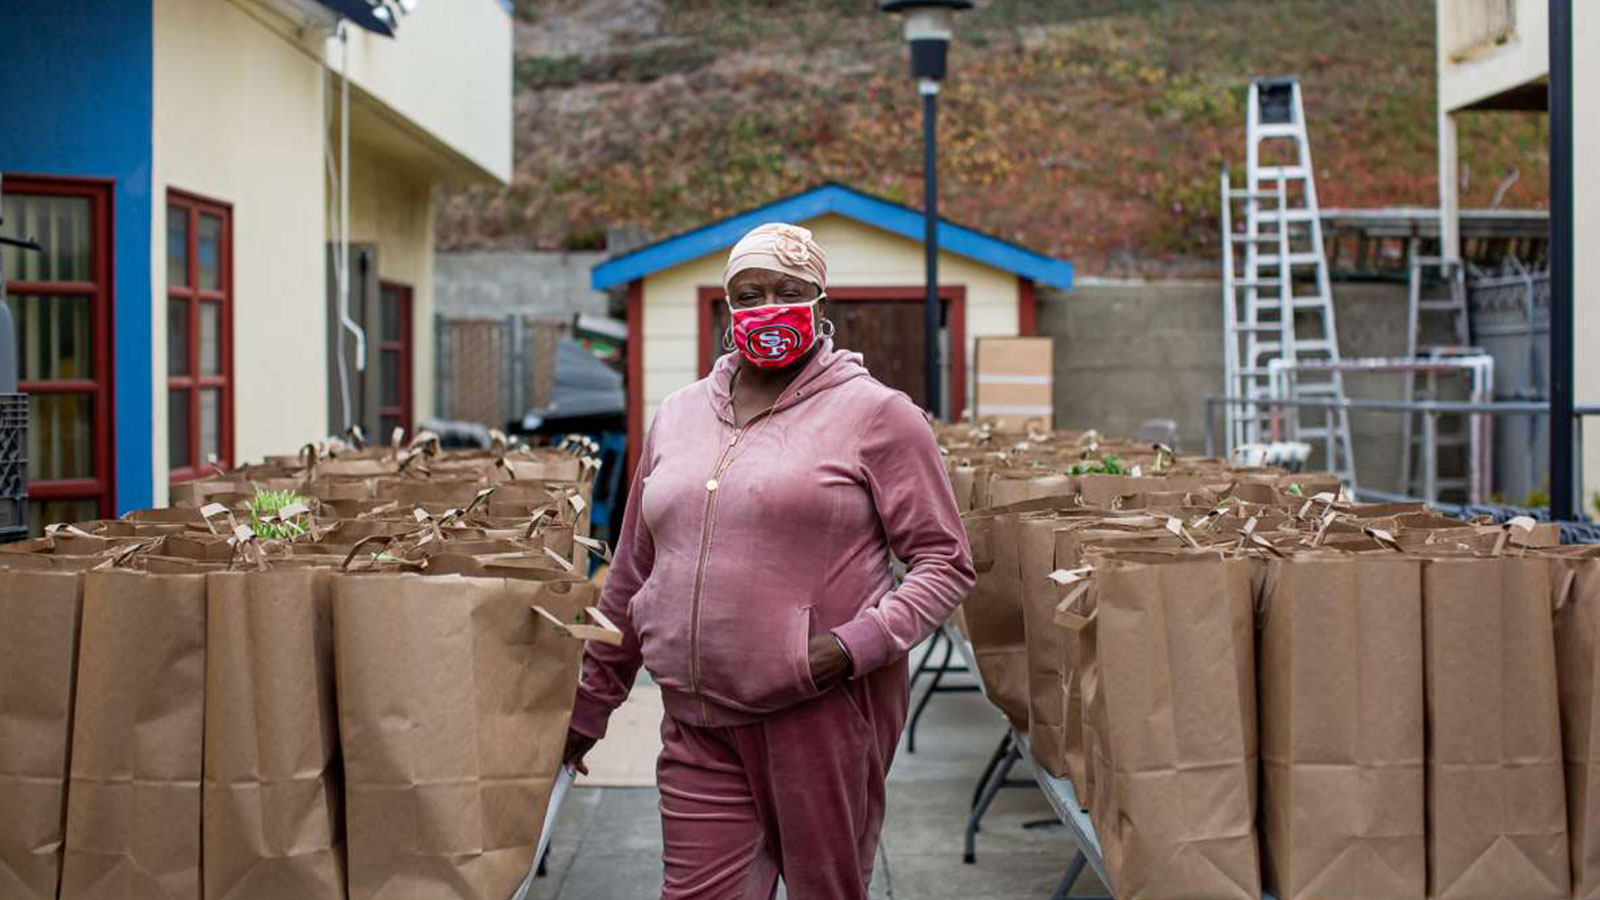 Felisia Thibodeaux, executive director of the Southwest Community Corporation, stands with bags of food she delivers